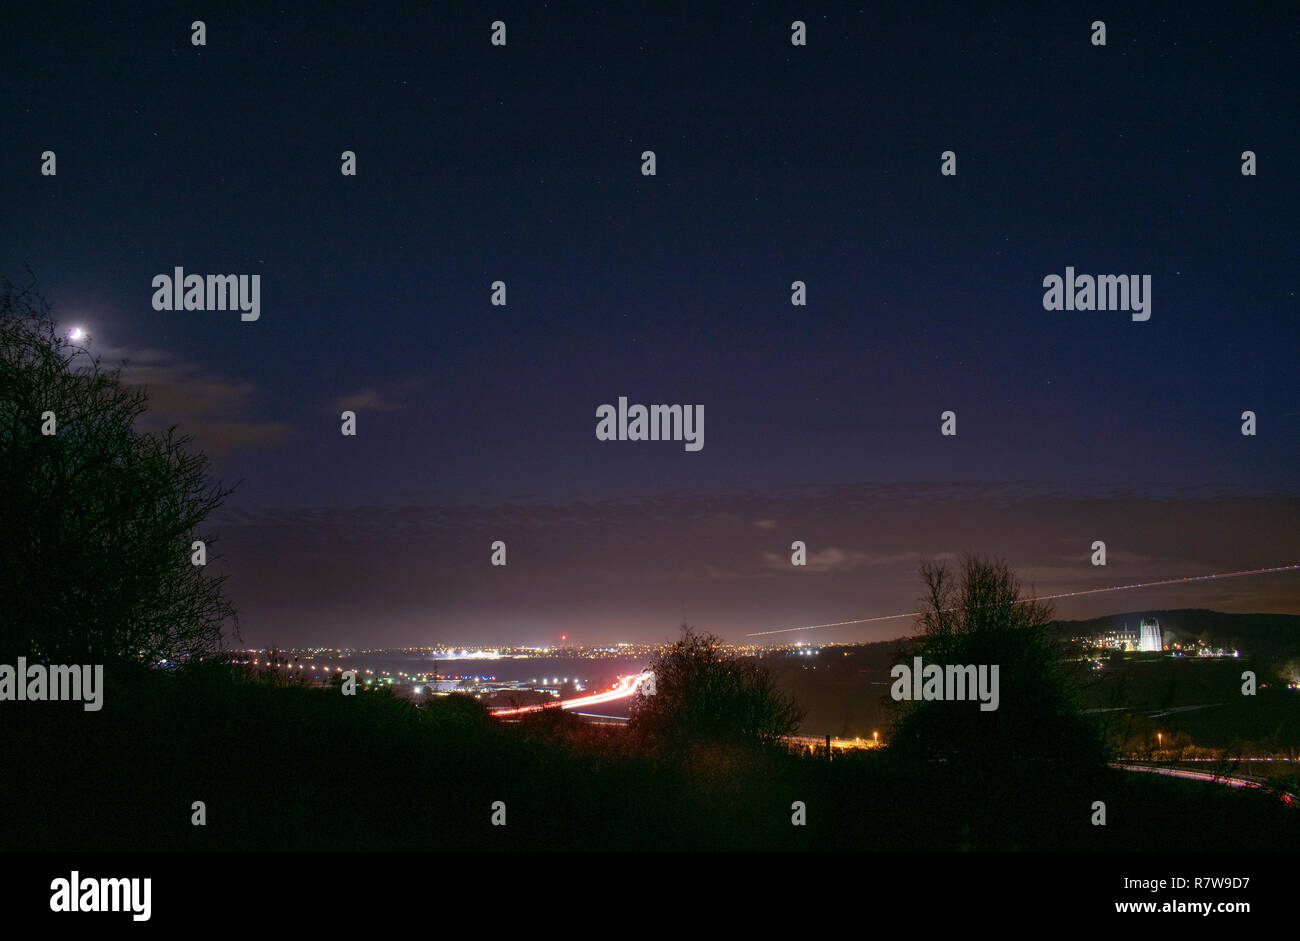 A27 Nightscape - Stock Image